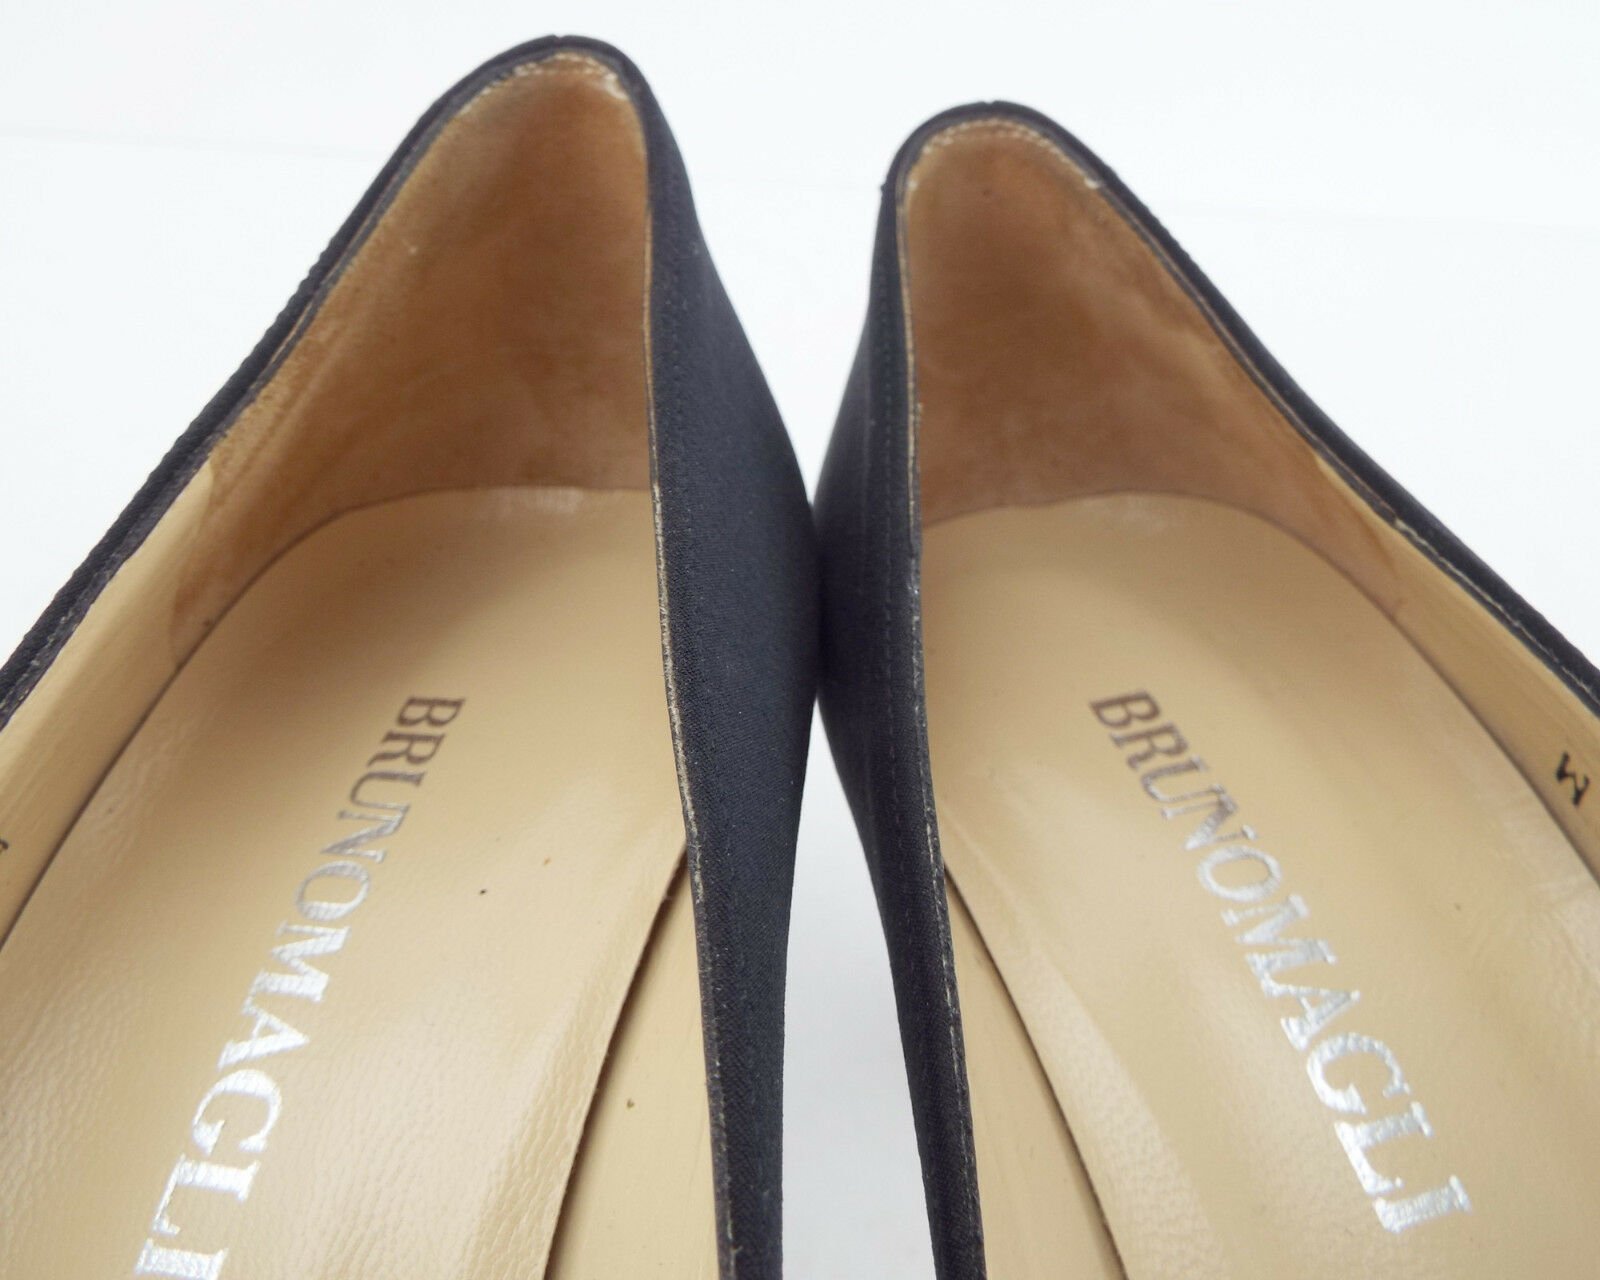 BRUNO MAGLI Size Size Size 7.5 AA Narrow NOVATI Black Fabric Open Toe Heels Pumps shoes 1a33eb